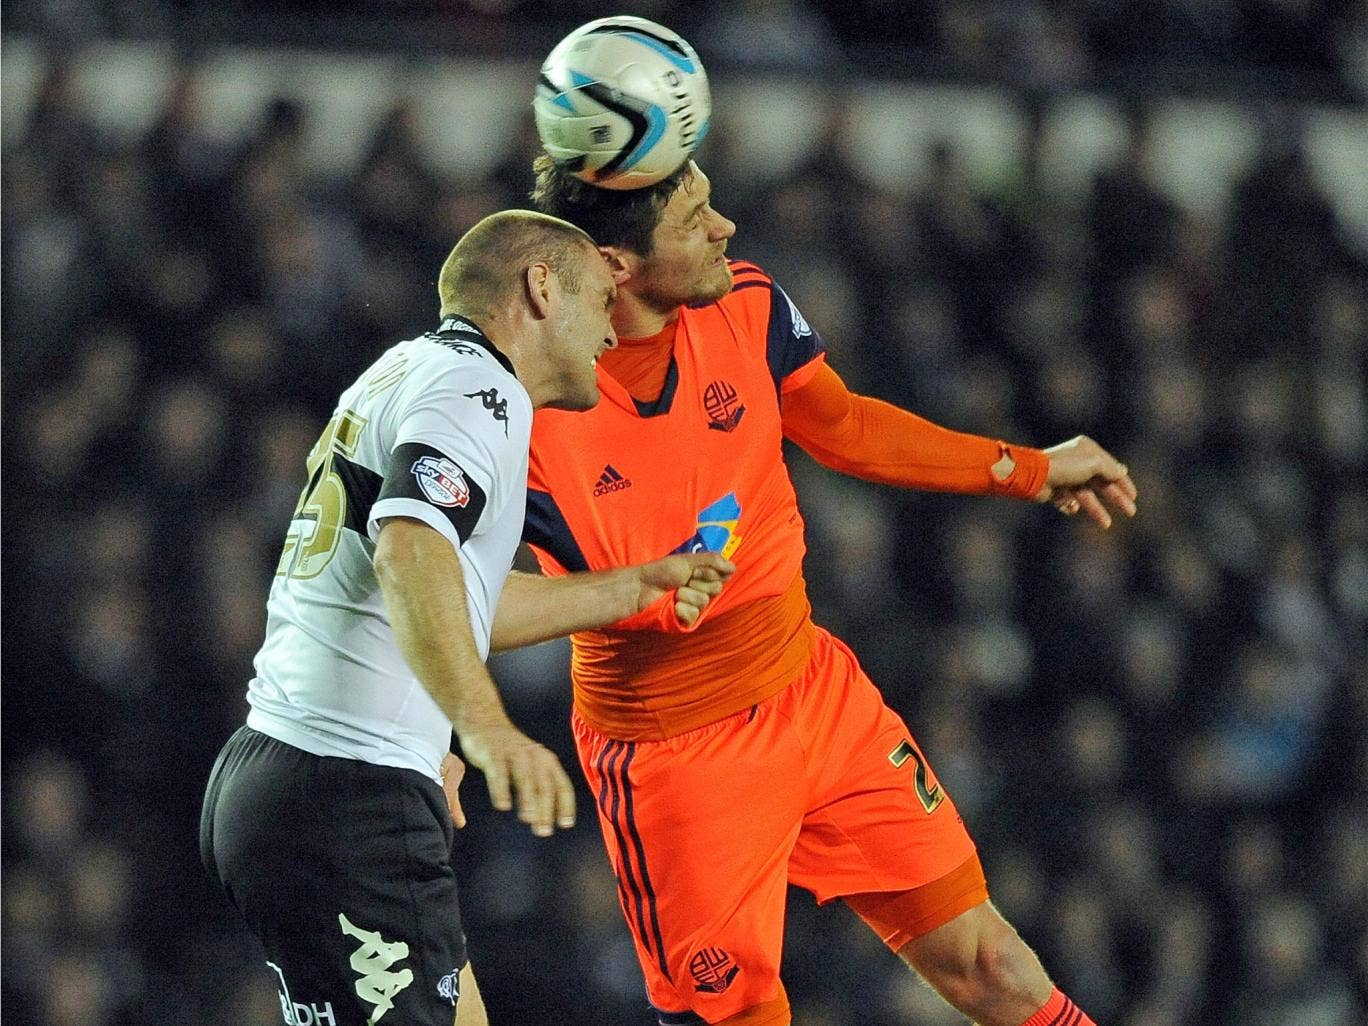 An aerial battle between Derby's Shaun Barker and Bolton's Lukas Jutkiewicz